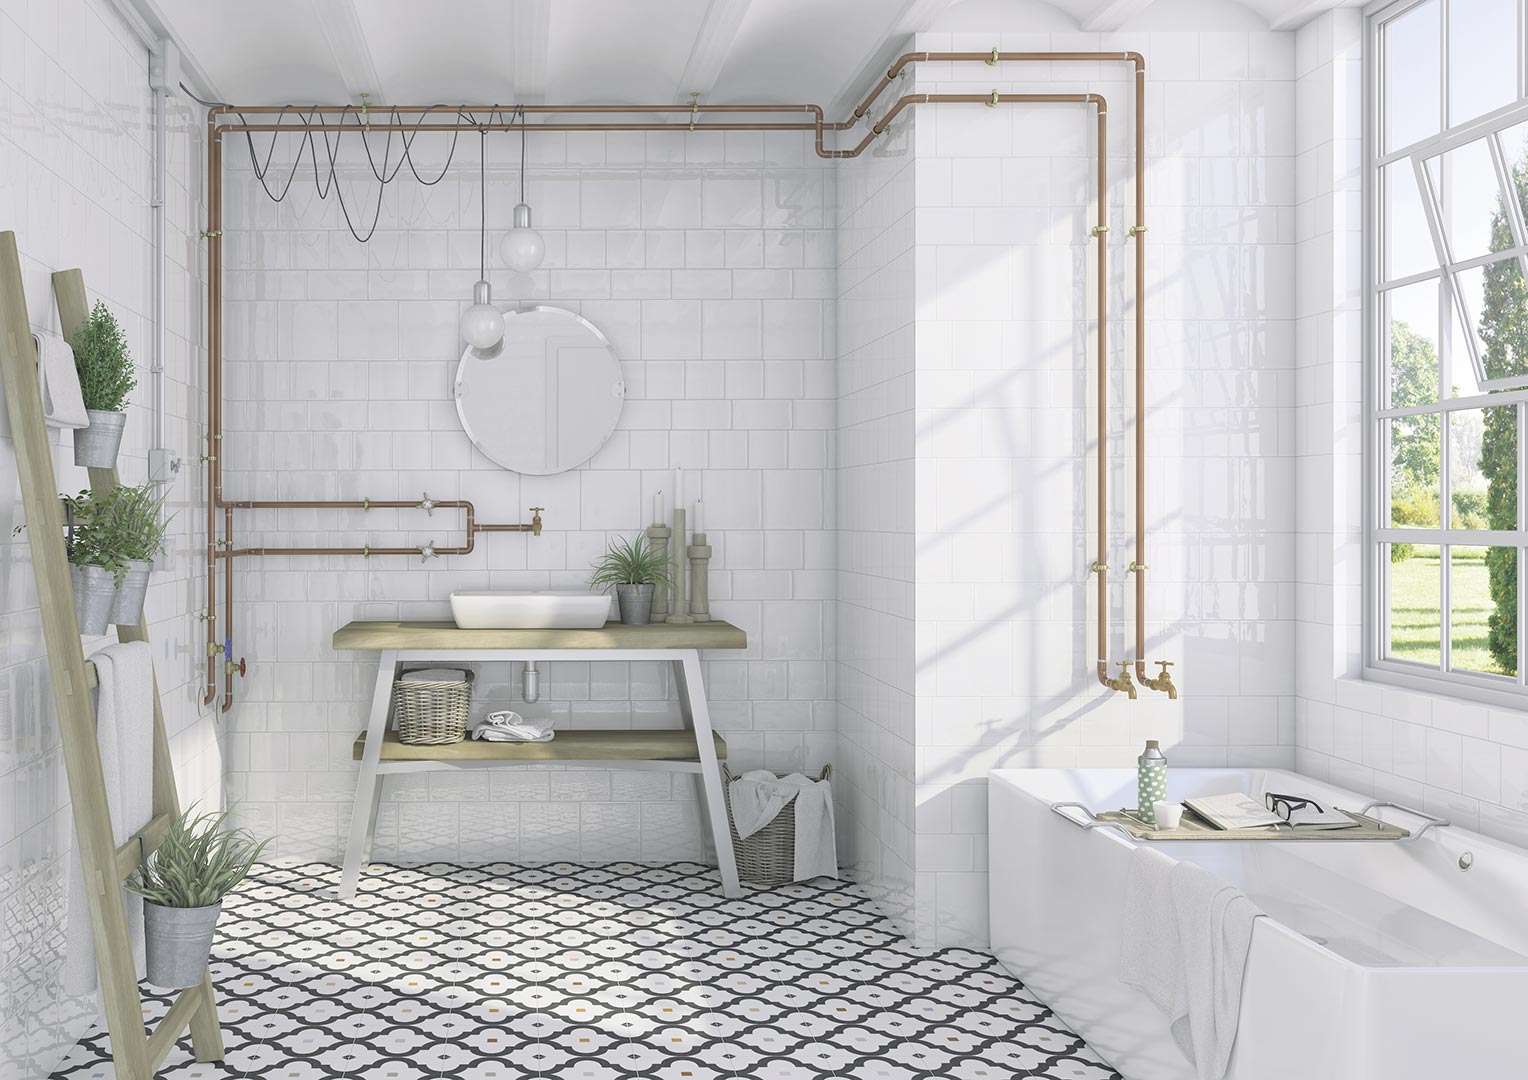 Ceramic heritage for Bathrooms | Etnia